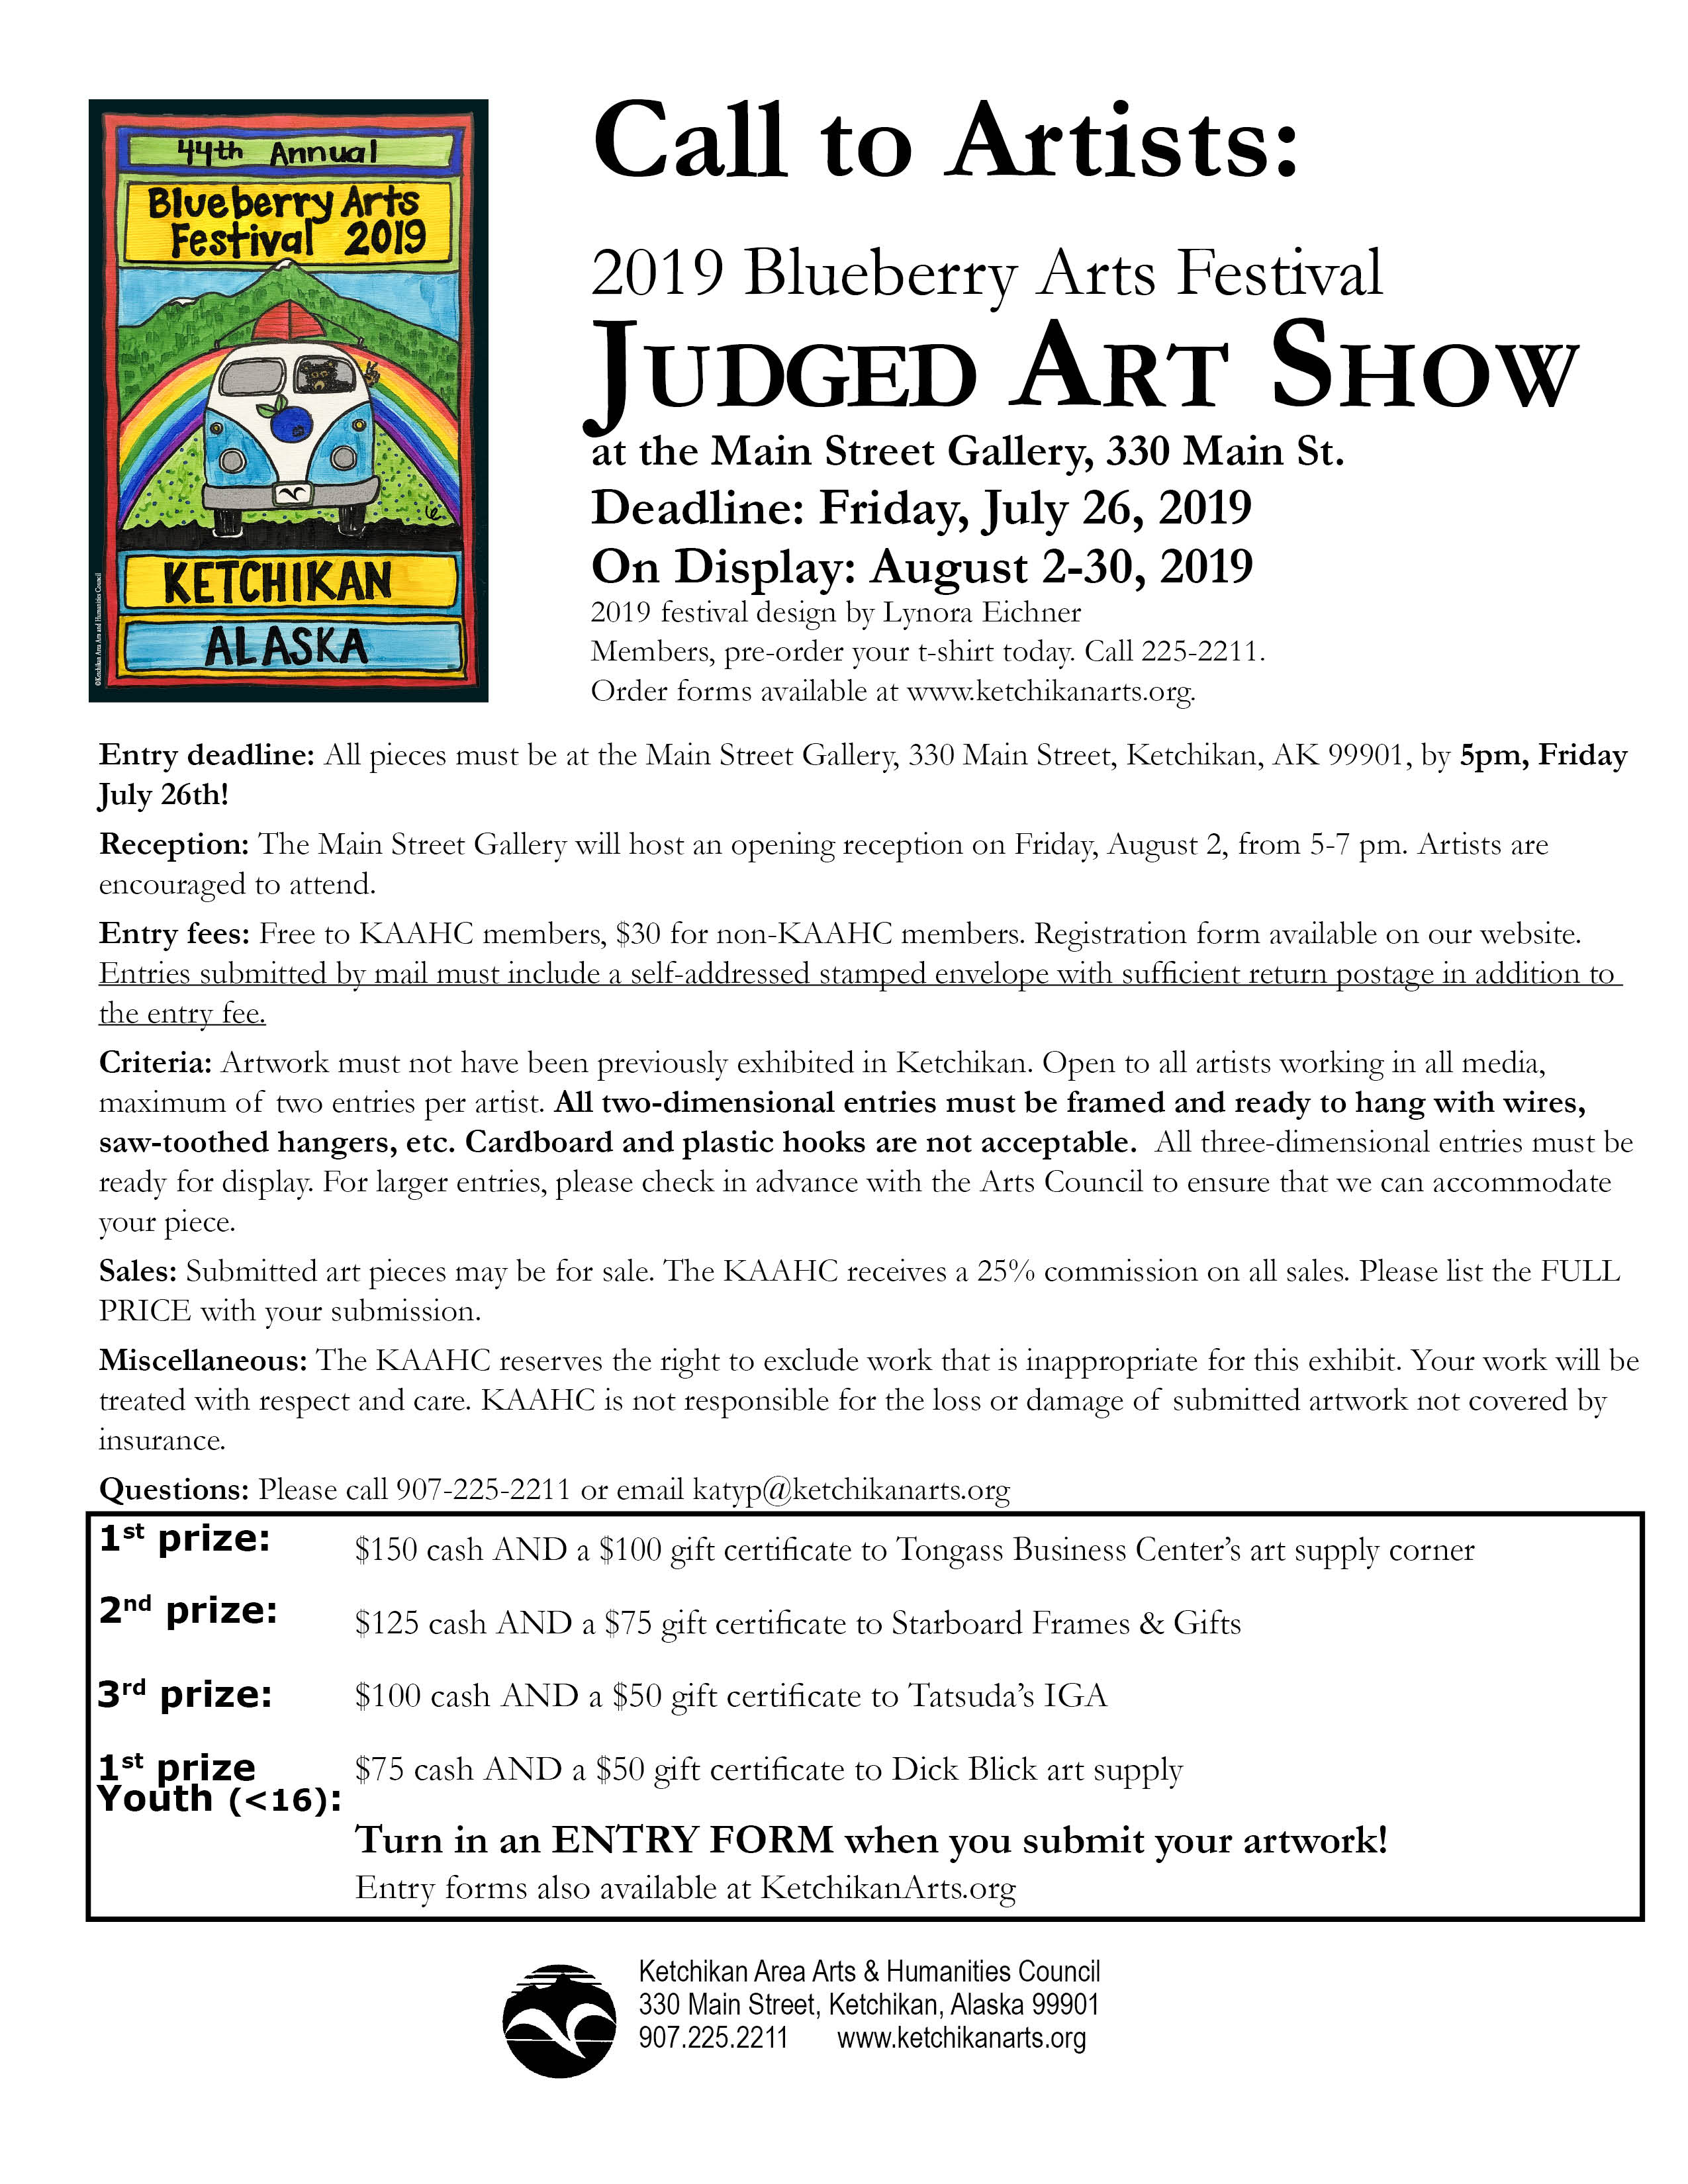 Open Call Blueberry Festival Exhibit Deadline for Submissions